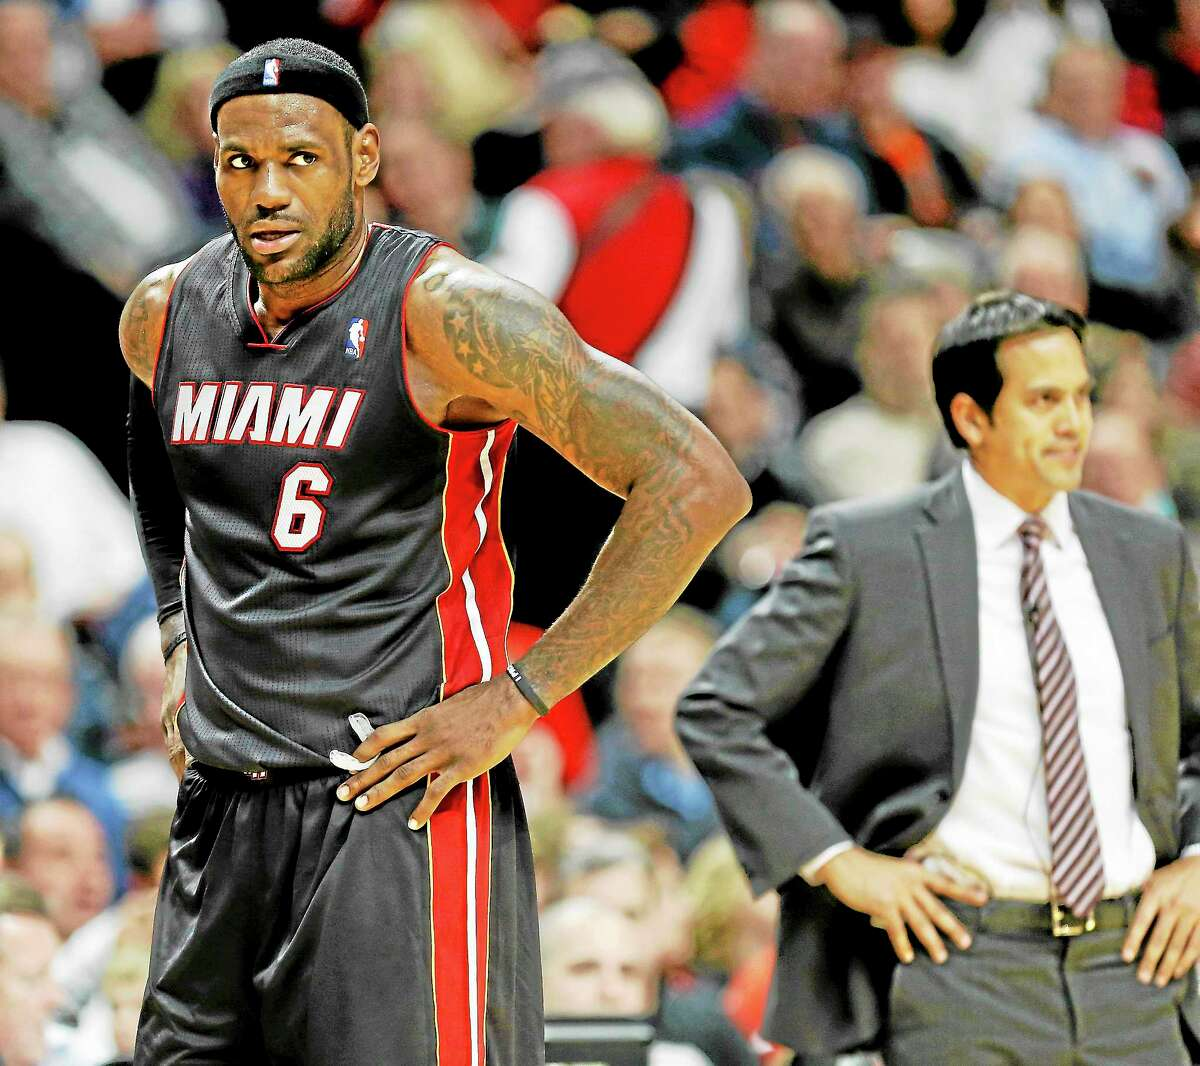 Miami Heat forward LeBron James reacts after his teammate was called for a foul against the Chicago Bulls during the second half of an NBA basketball game in Chicago, Thursday, Dec. 5, 2013. The Bulls defeated the Heat 107-87. (AP Photo/Kamil Krzaczynski)